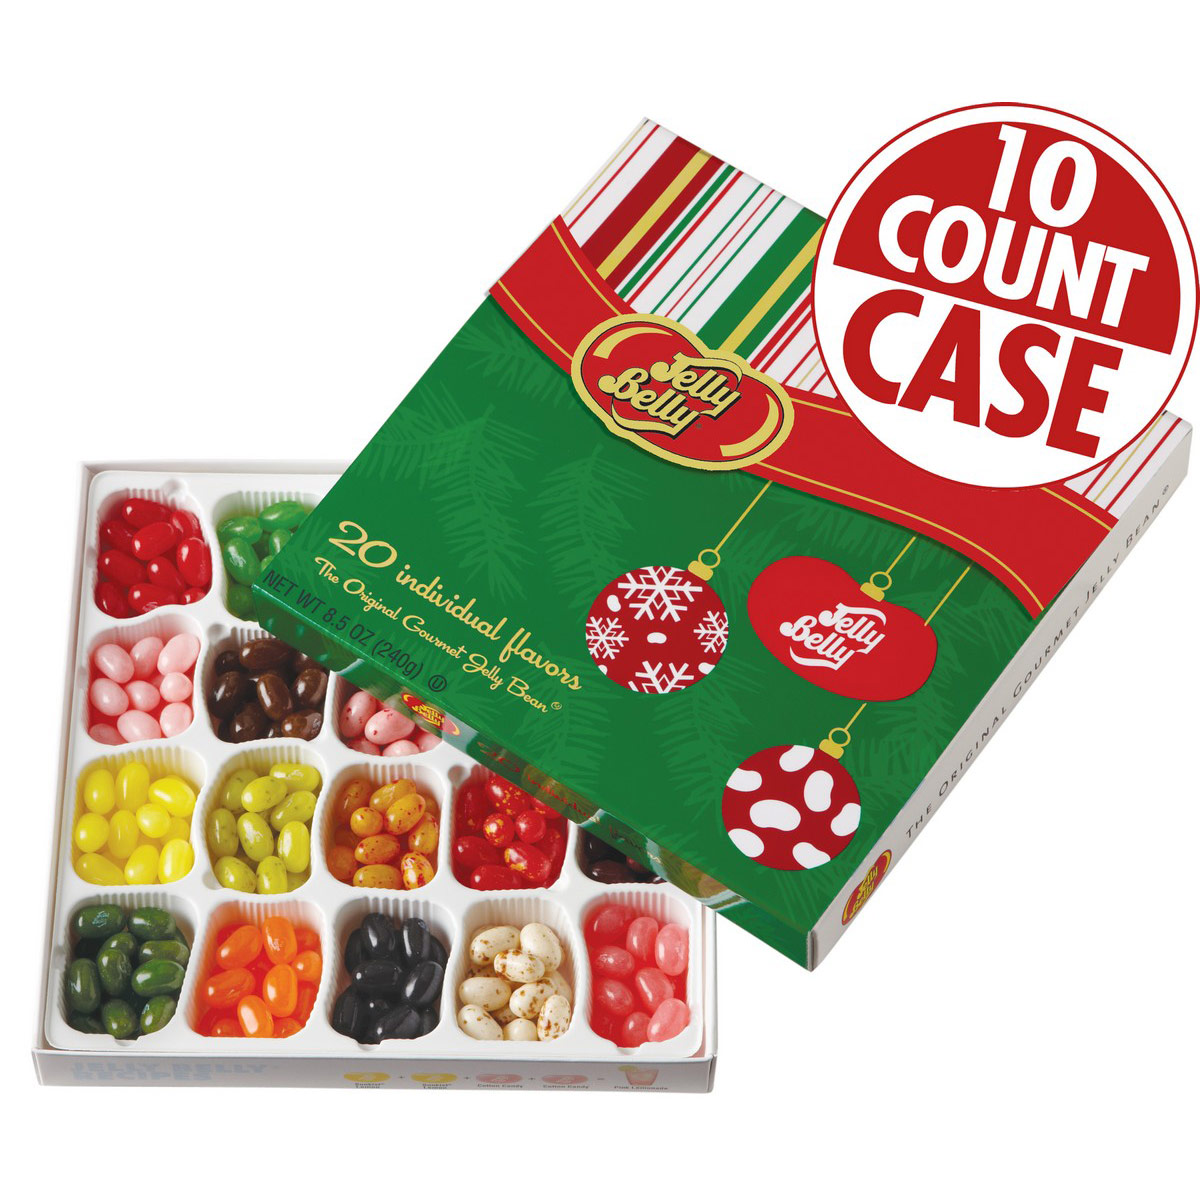 Jelly Belly 20-Flavor Christmas Gift Box - 10-Count Case